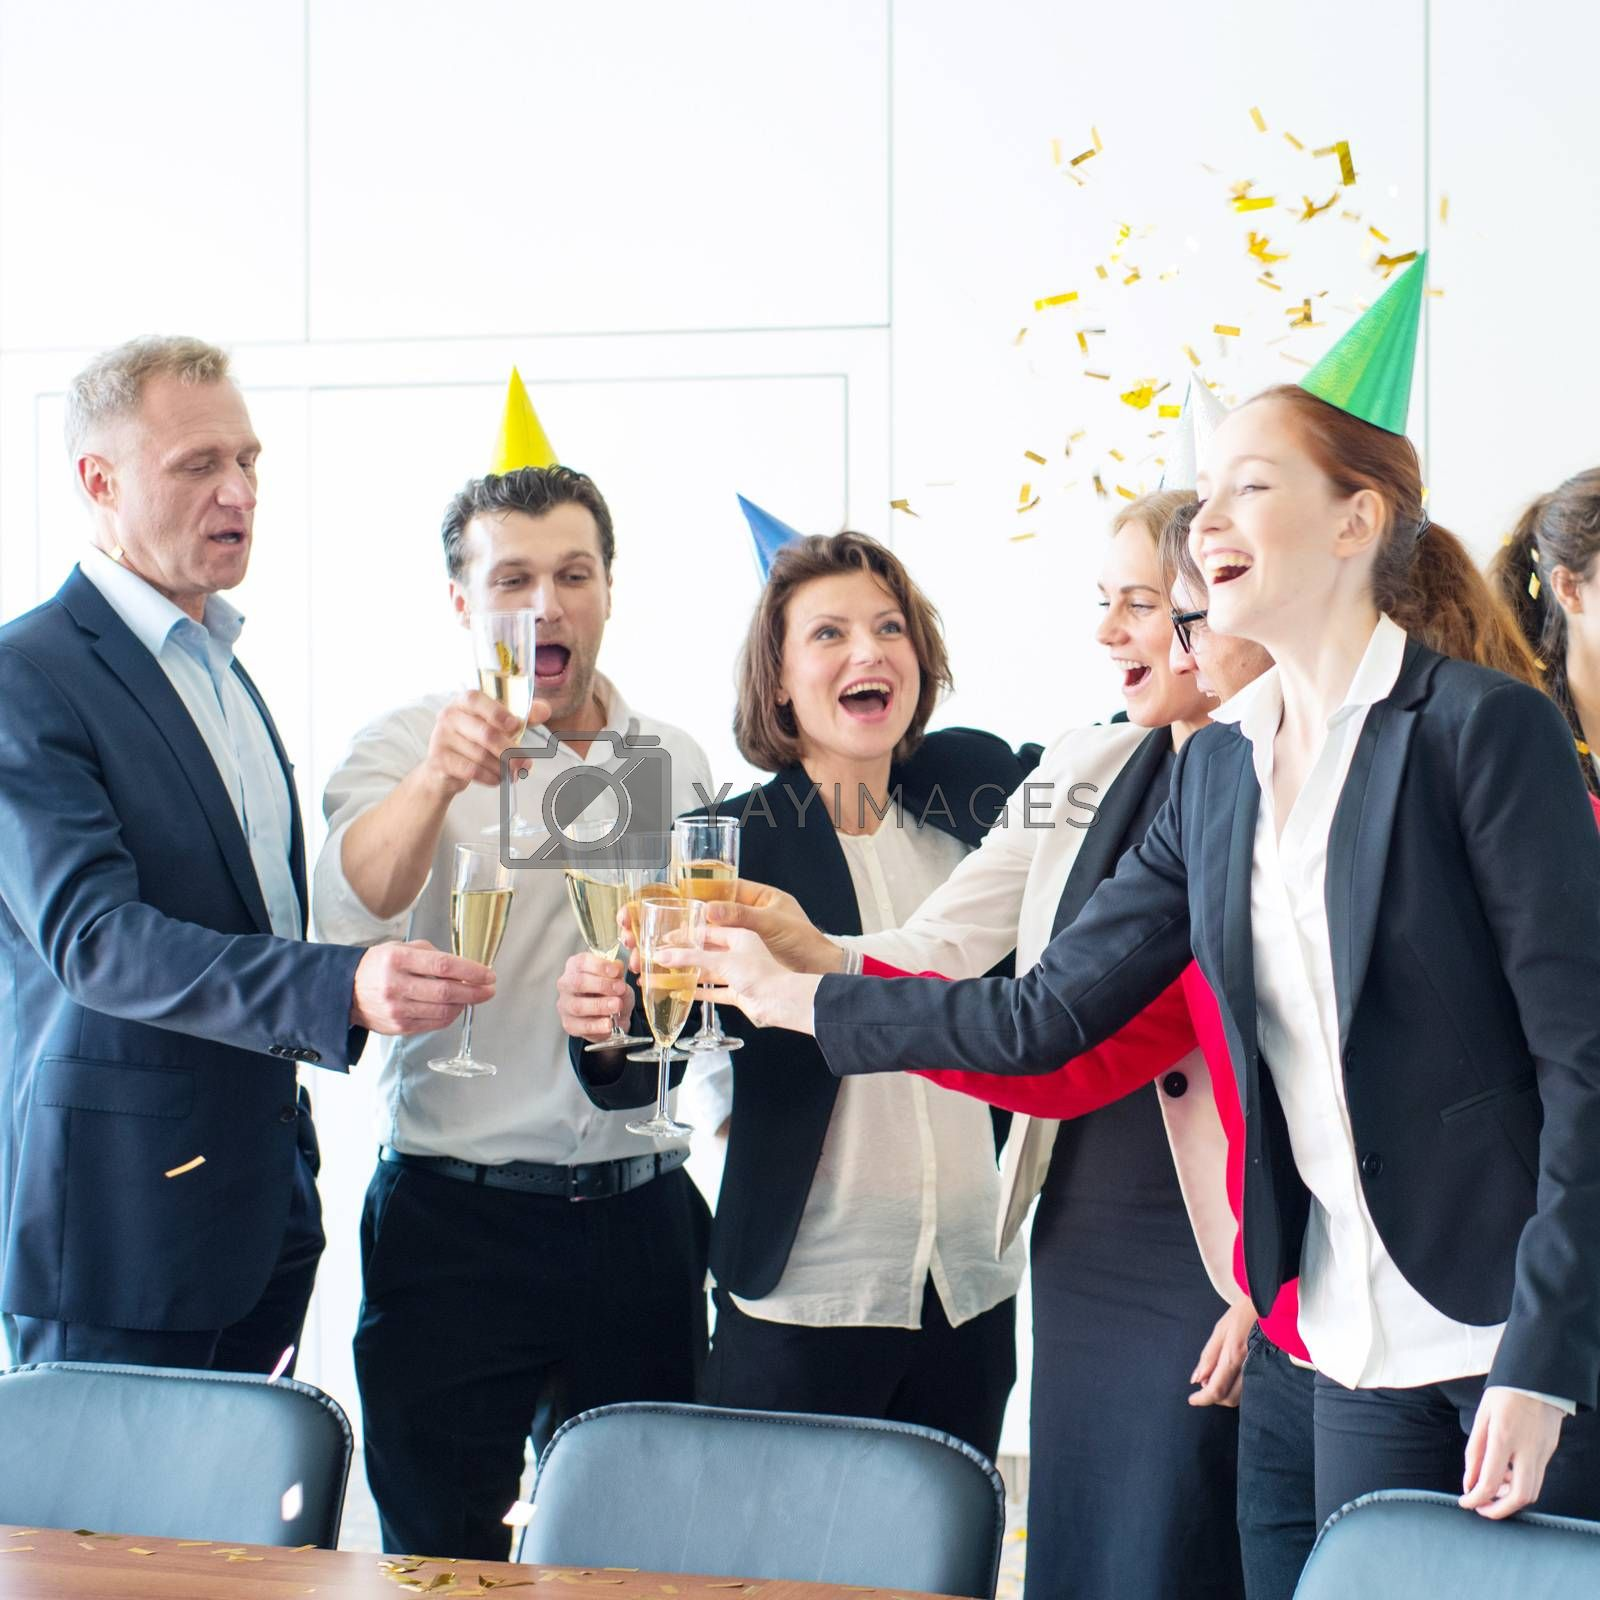 Business people celebrating victory at office party holding glasses of champagne